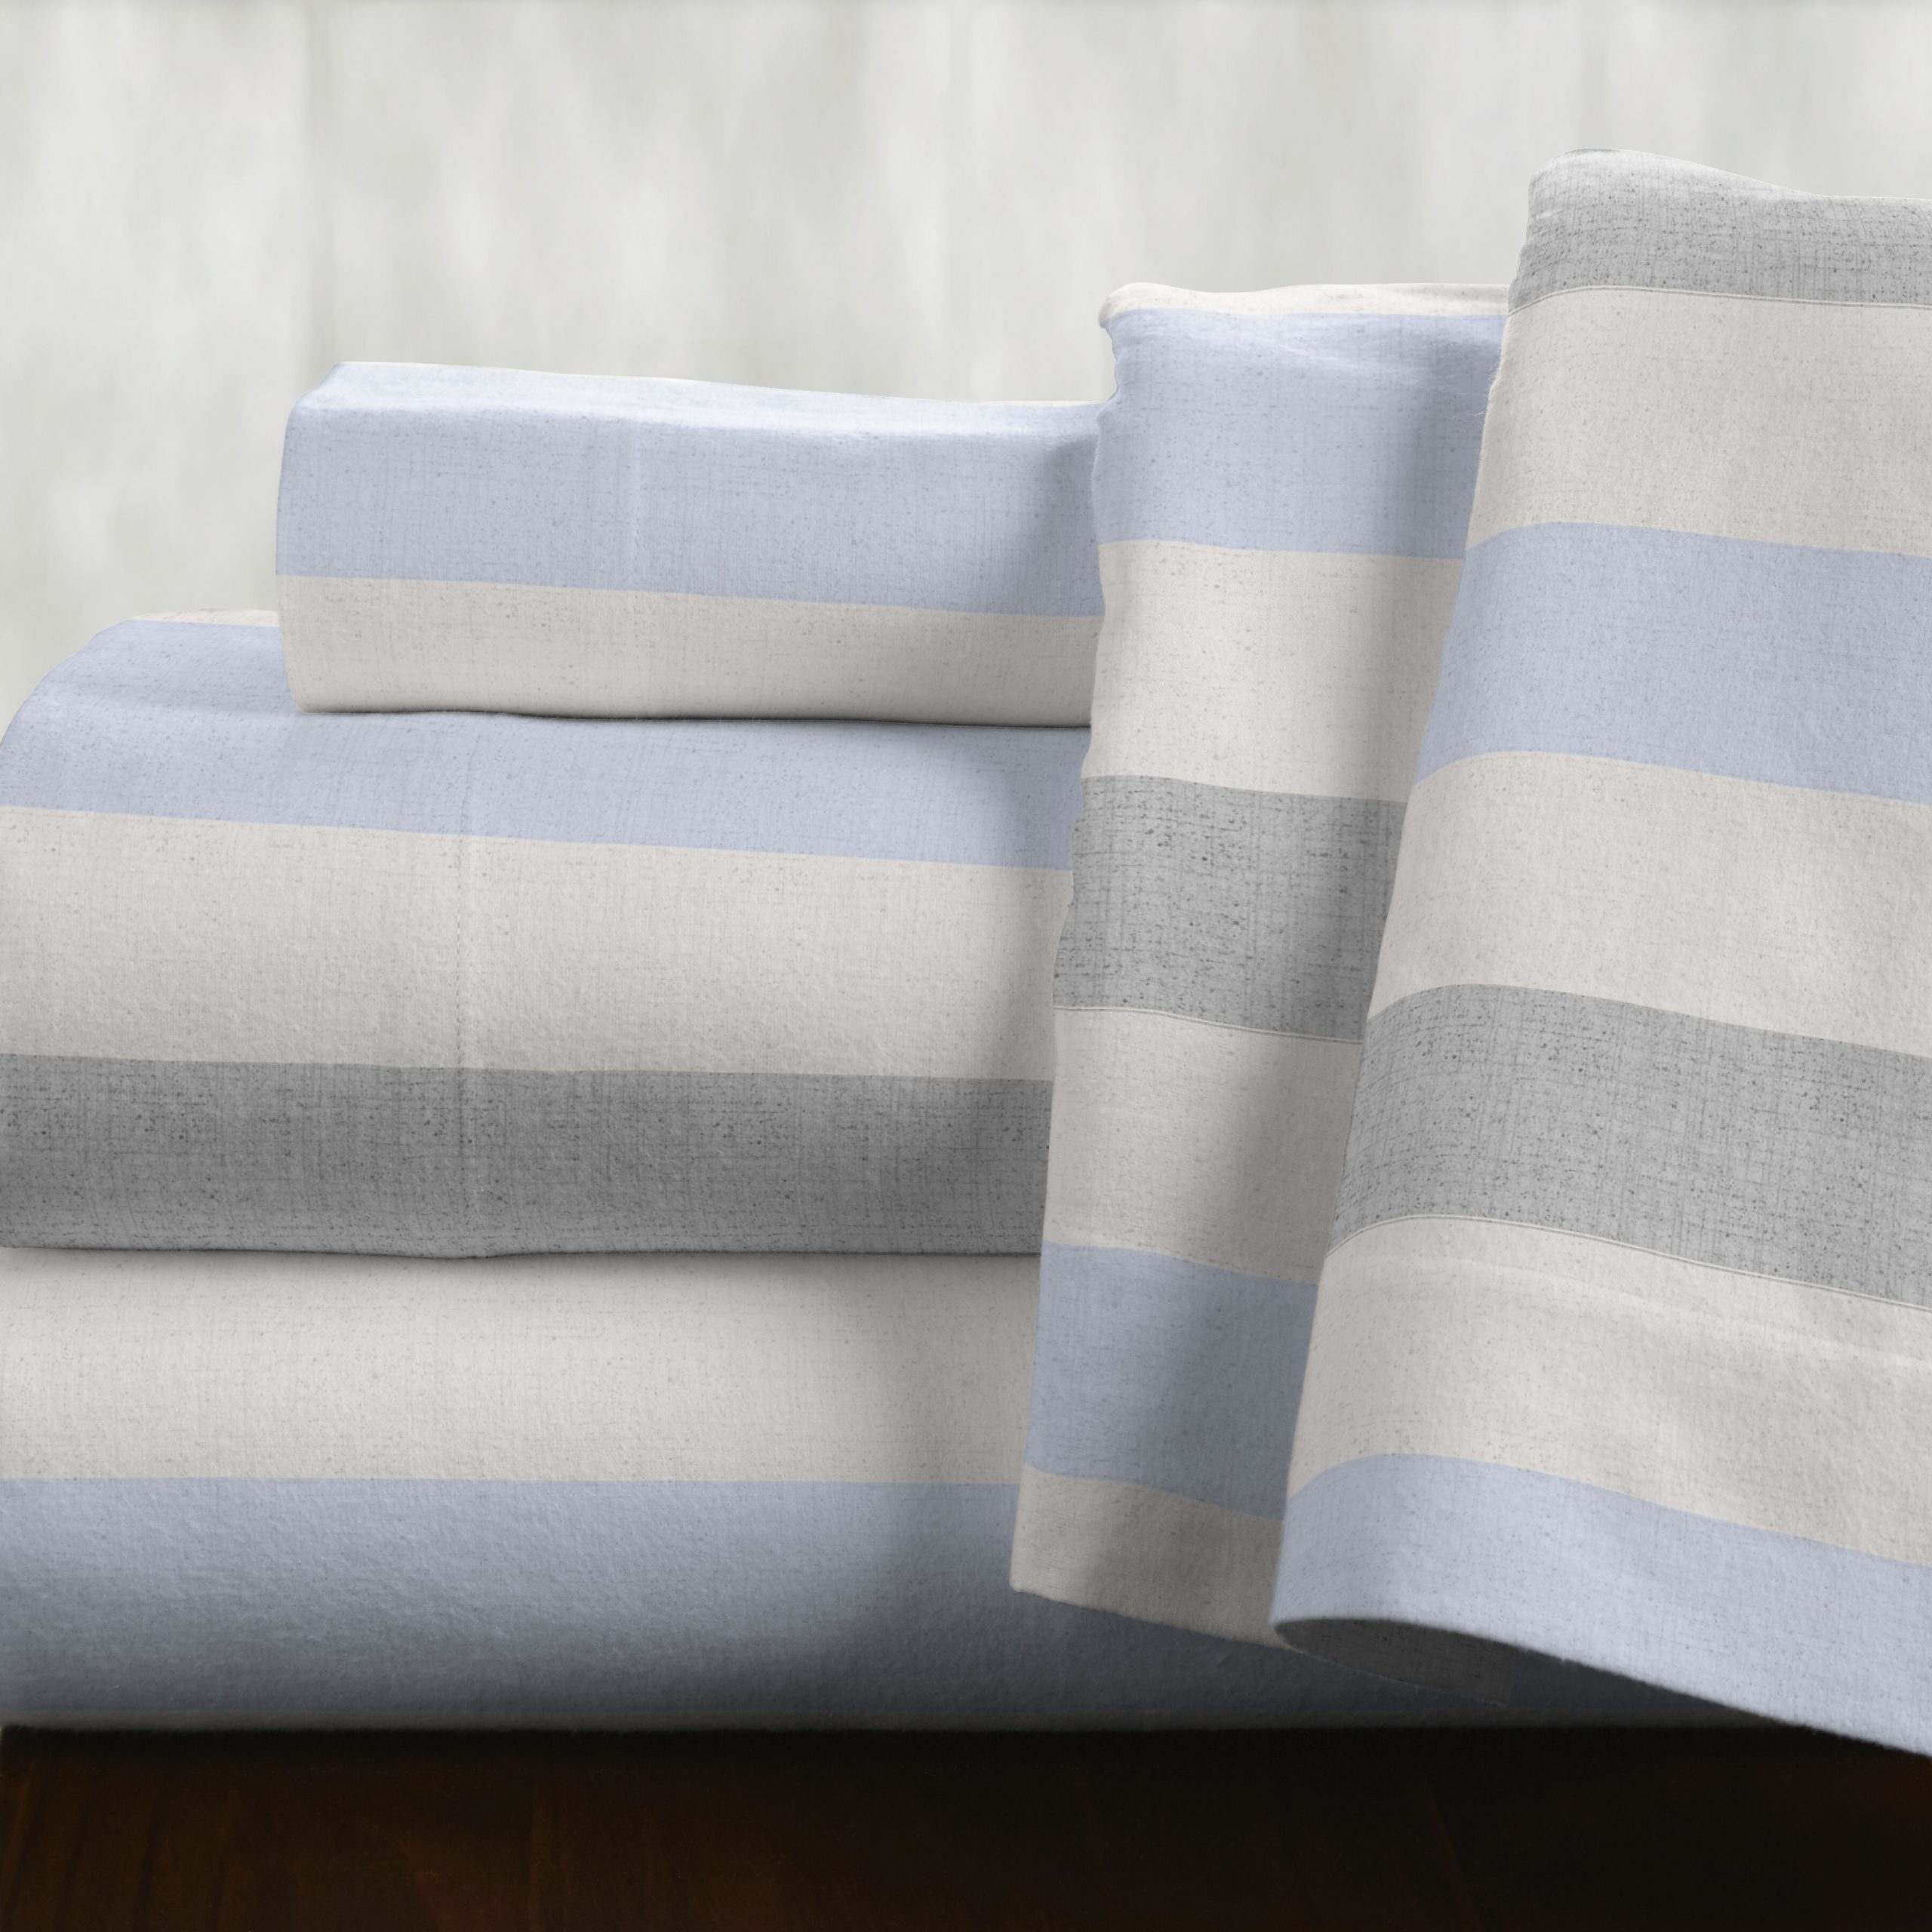 [%talbot Striped 100% Cotton Flannel Sheet Set Within Trendy Swallows Wall Decor (set Of 6) By Highland Dunes|swallows Wall Decor (set Of 6) By Highland Dunes In Latest Talbot Striped 100% Cotton Flannel Sheet Set|fashionable Swallows Wall Decor (set Of 6) By Highland Dunes For Talbot Striped 100% Cotton Flannel Sheet Set|popular Talbot Striped 100% Cotton Flannel Sheet Set Within Swallows Wall Decor (set Of 6) By Highland Dunes%] (View 6 of 20)